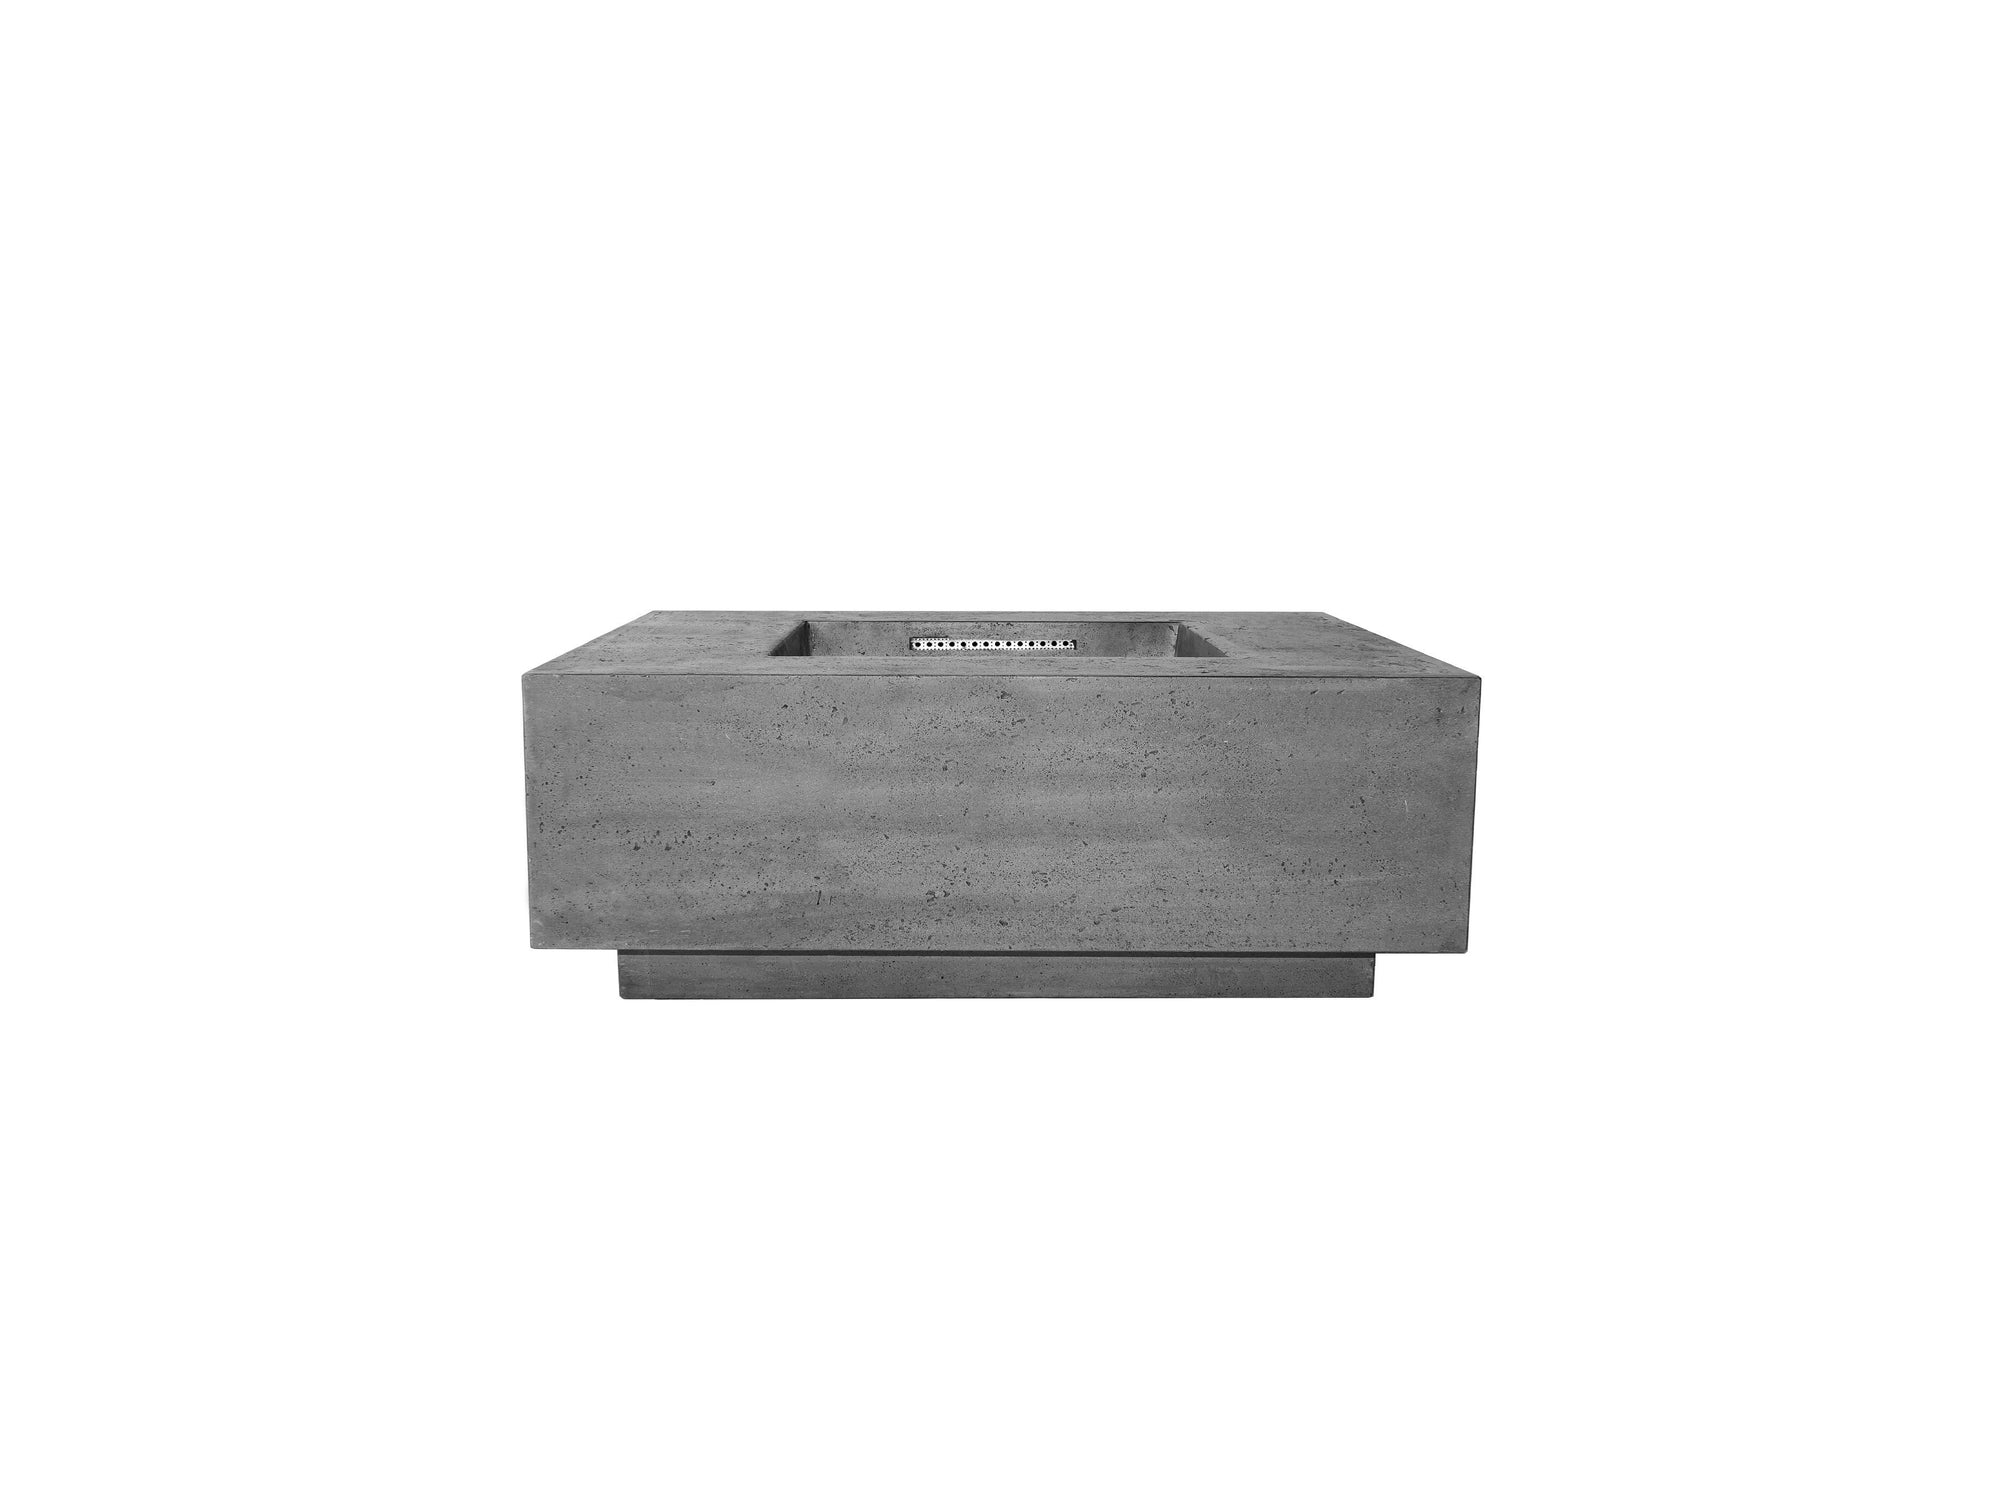 Prism Hardscapes Tavola 3 Fire Table - Fire Pit Oasis